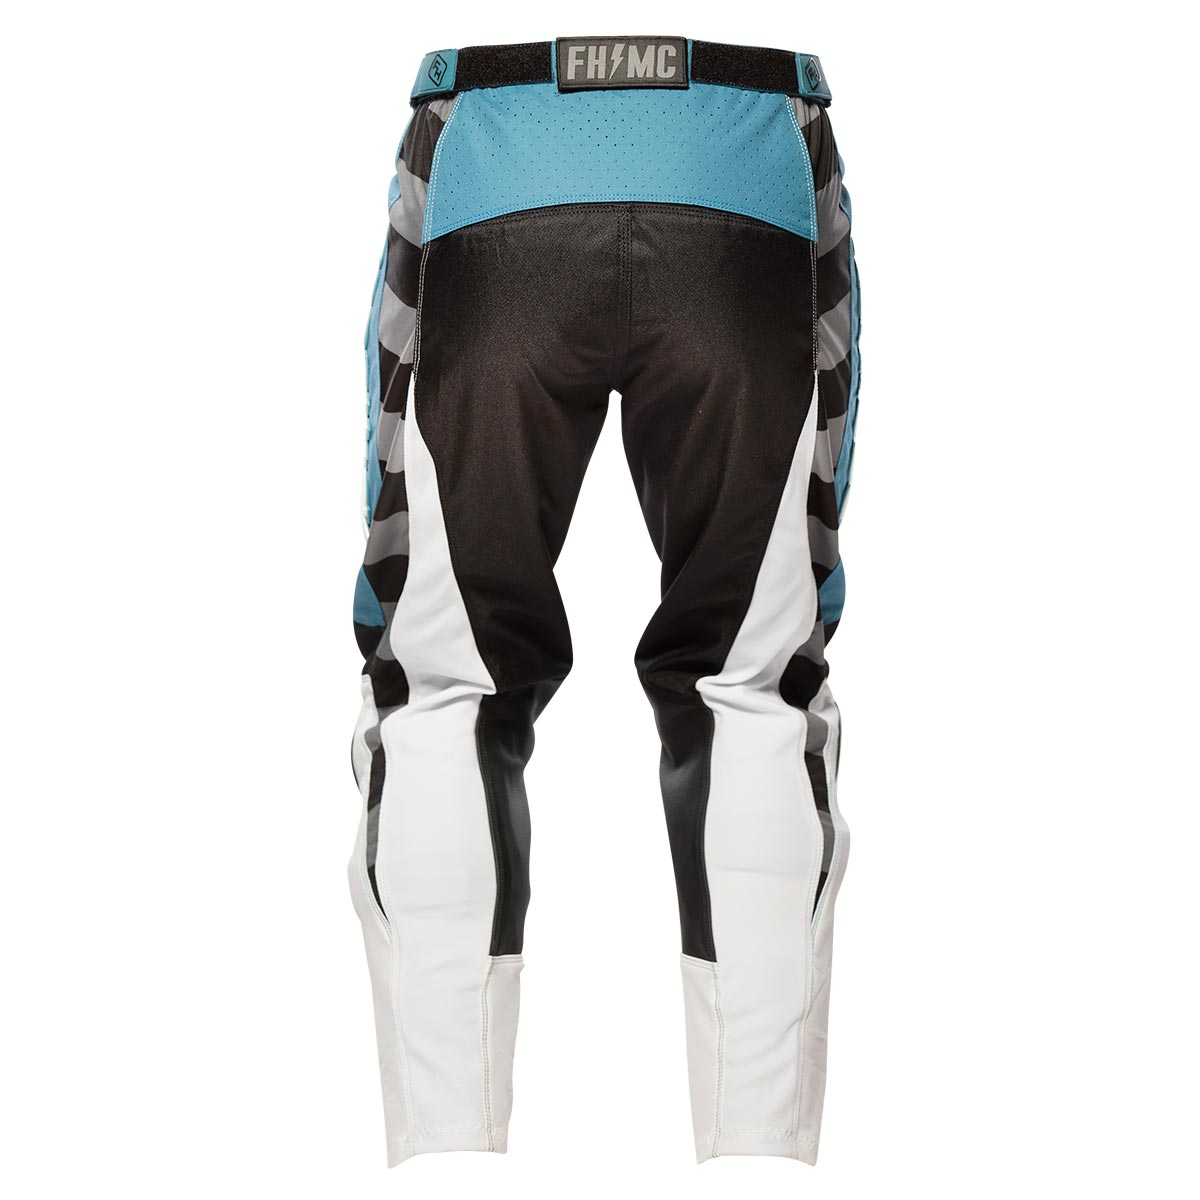 Grindhouse 2.0 Pants - Slate/White